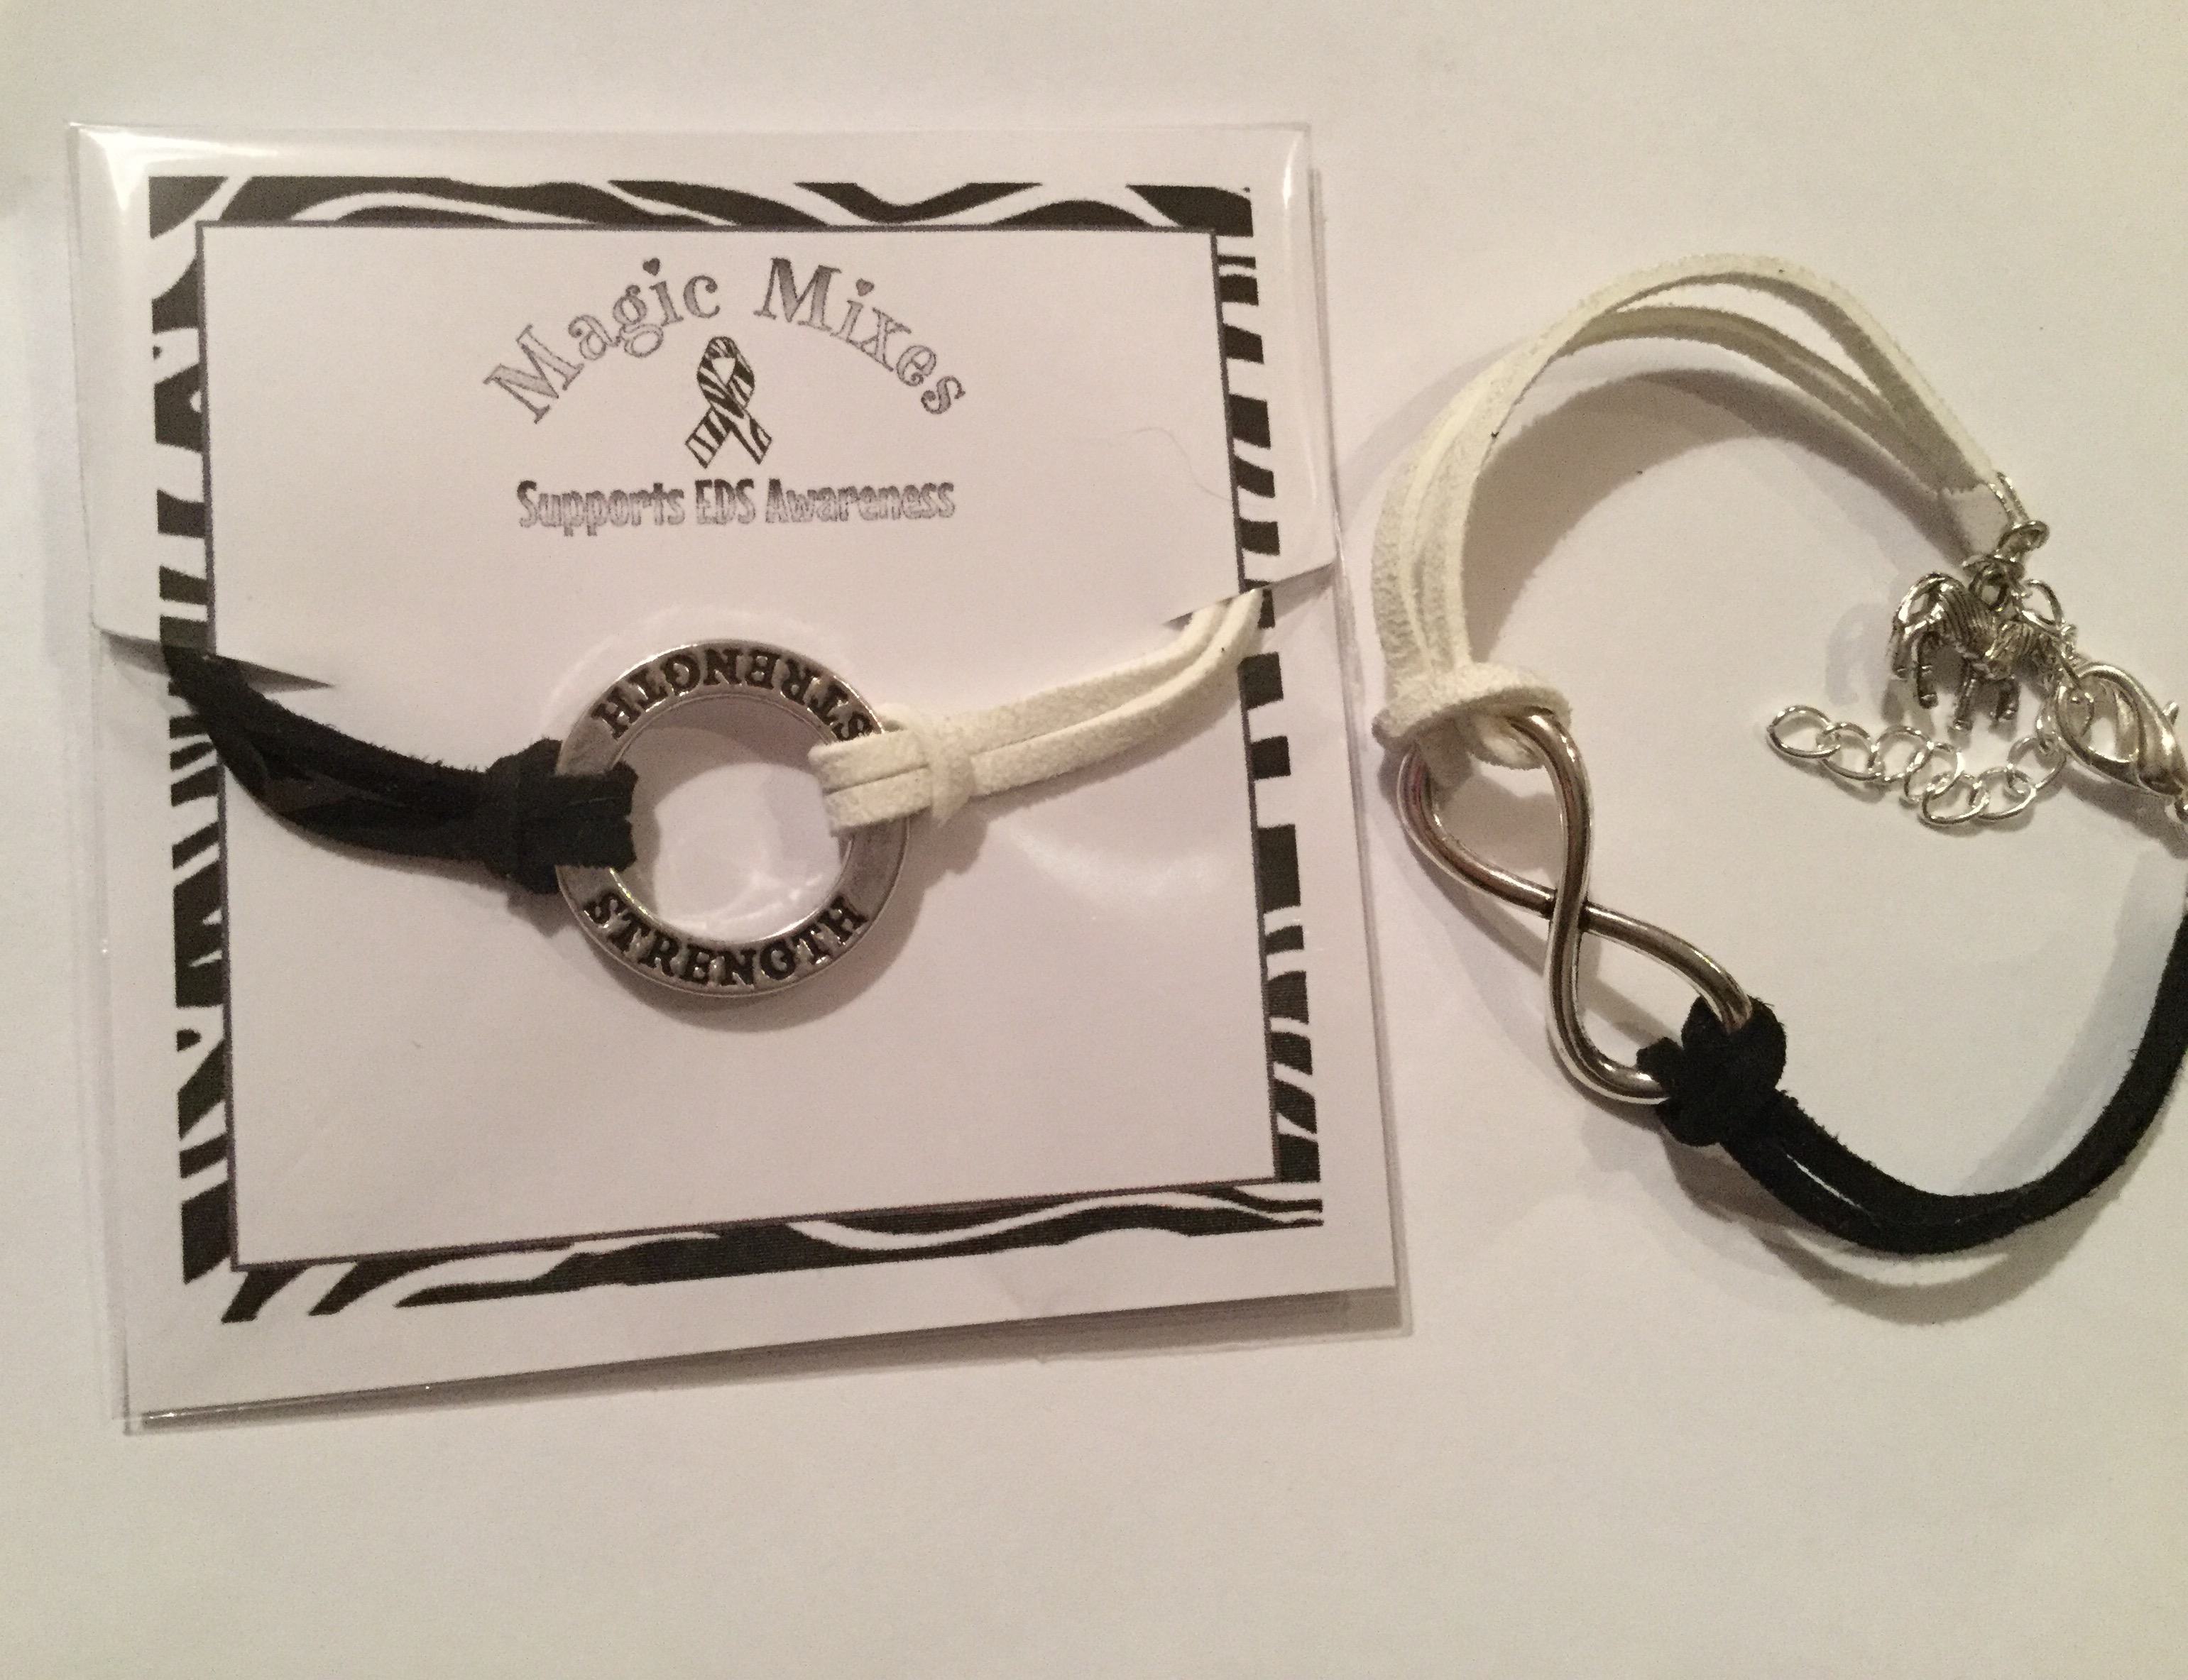 or and plated bracelet silver rose ehlers ltd eds products butler zebra ladies danlos with gold womens grace charm anklet awareness syndrome